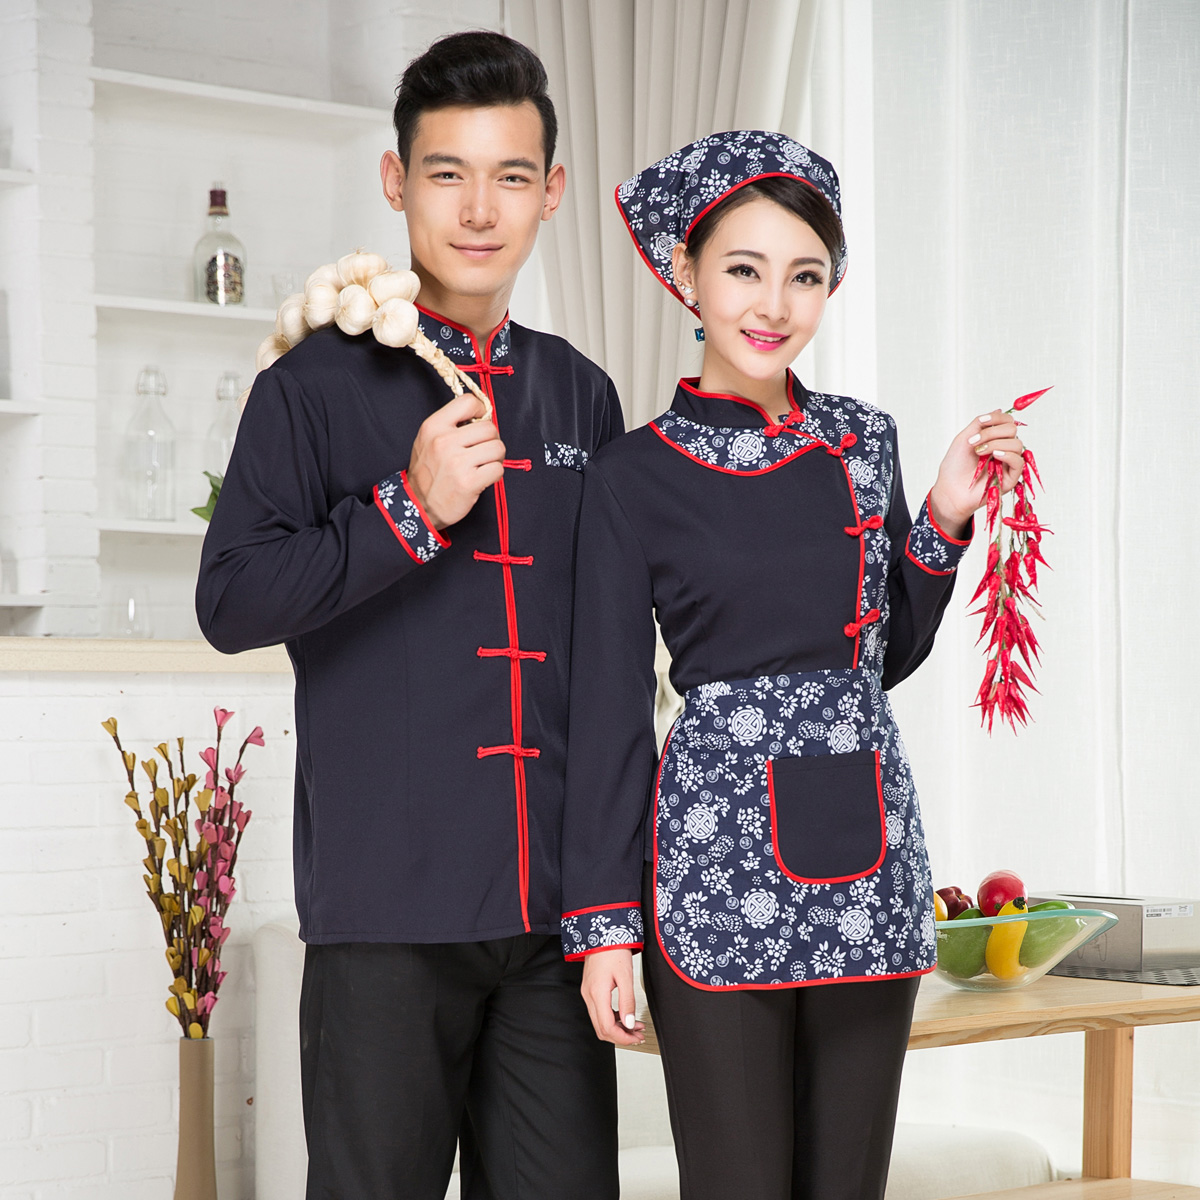 B151对hotel uniforms spring male and female models hotel restaurant hot pot restaurant dining restaurant waiter uniform long sleeve